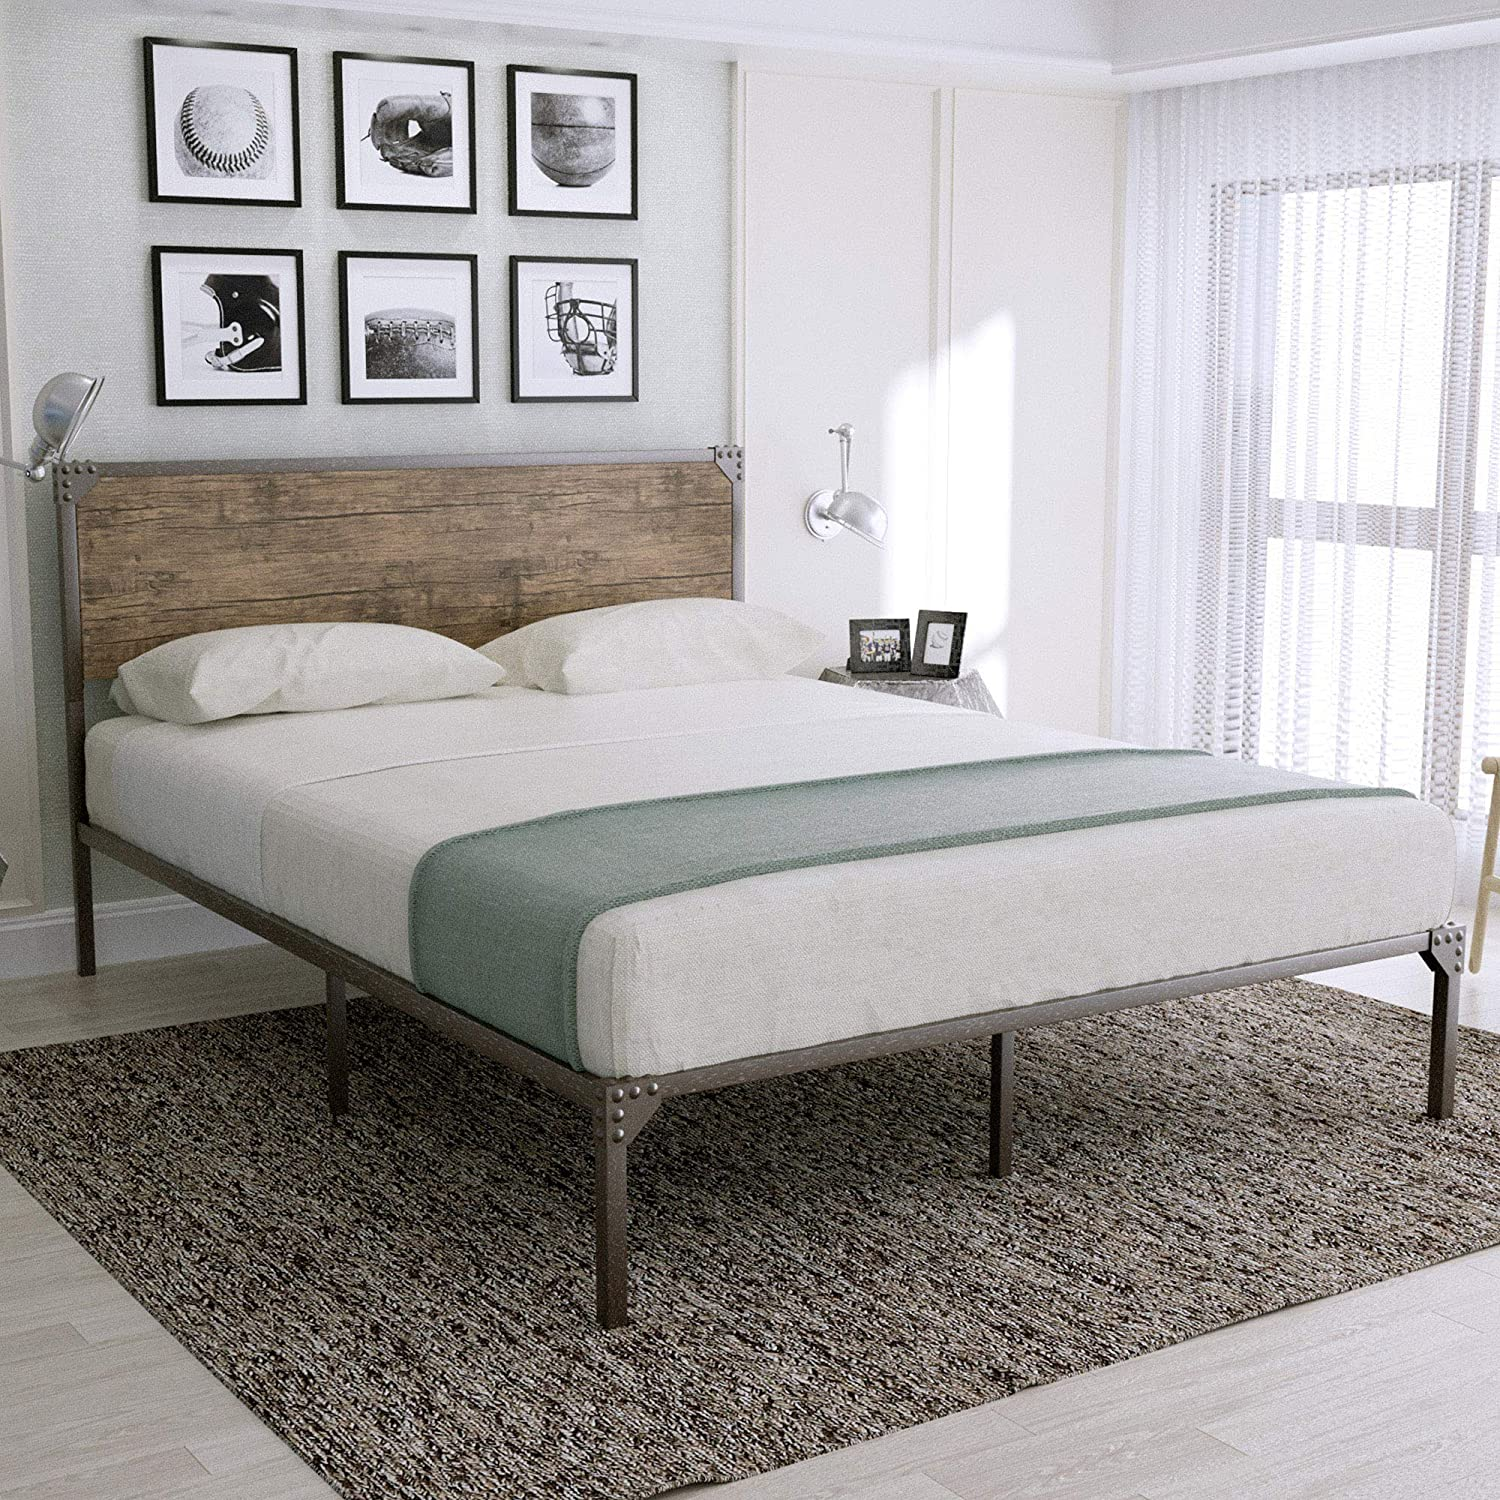 Urest Industrial Full Size Bed Frame with Headboard Metal Platform Bed Frame Mattress Foundation Strong Slat Support No Box Spring Needed, Snow Brown